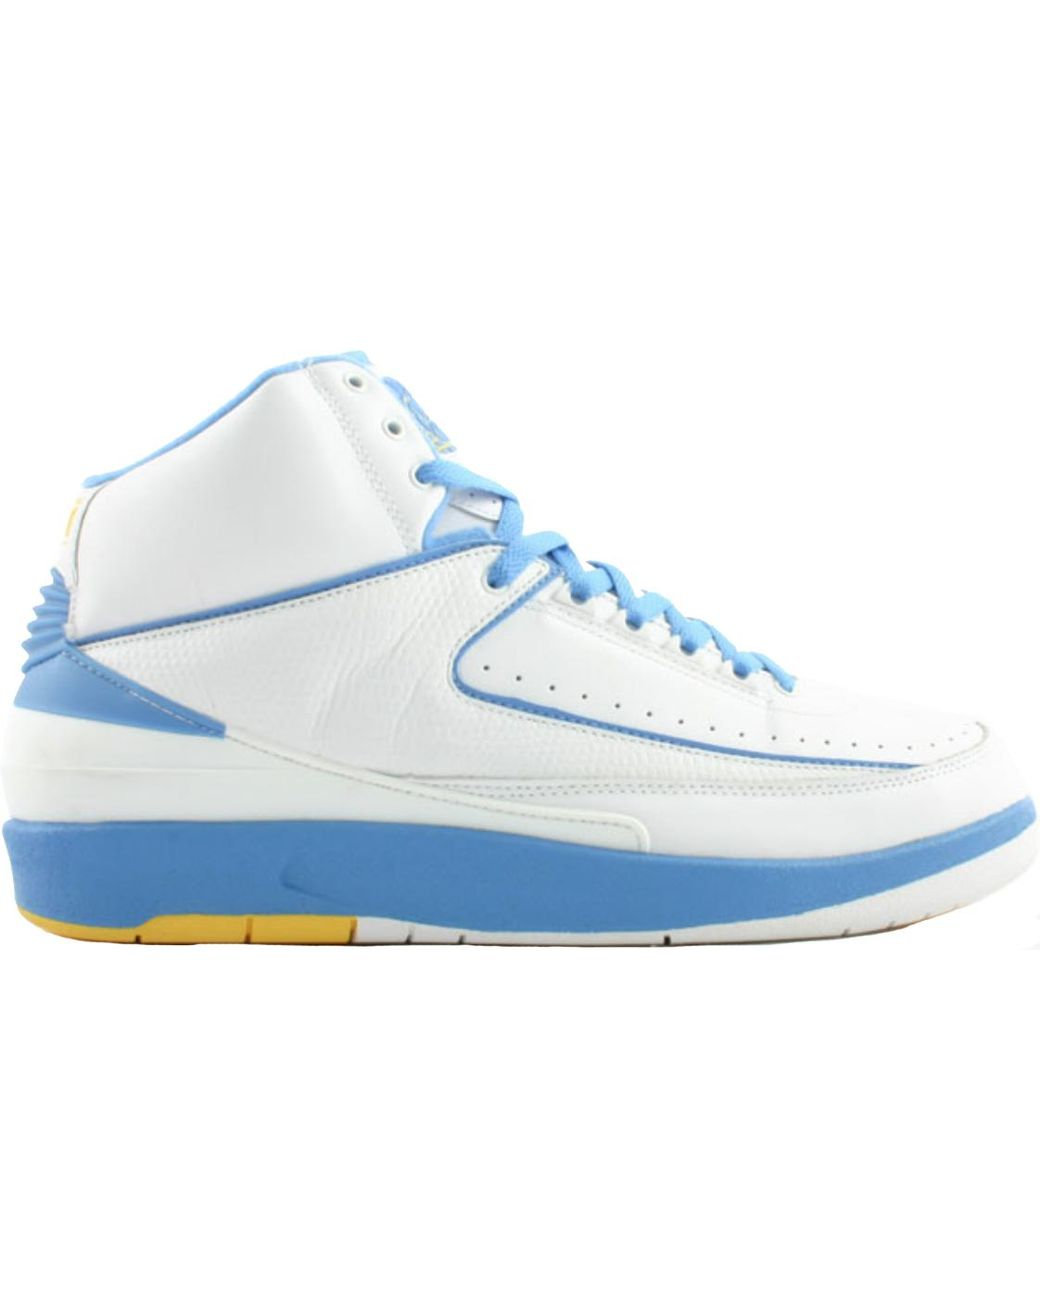 meet aeee9 bd1ea Men's Blue 2 Retro Melo